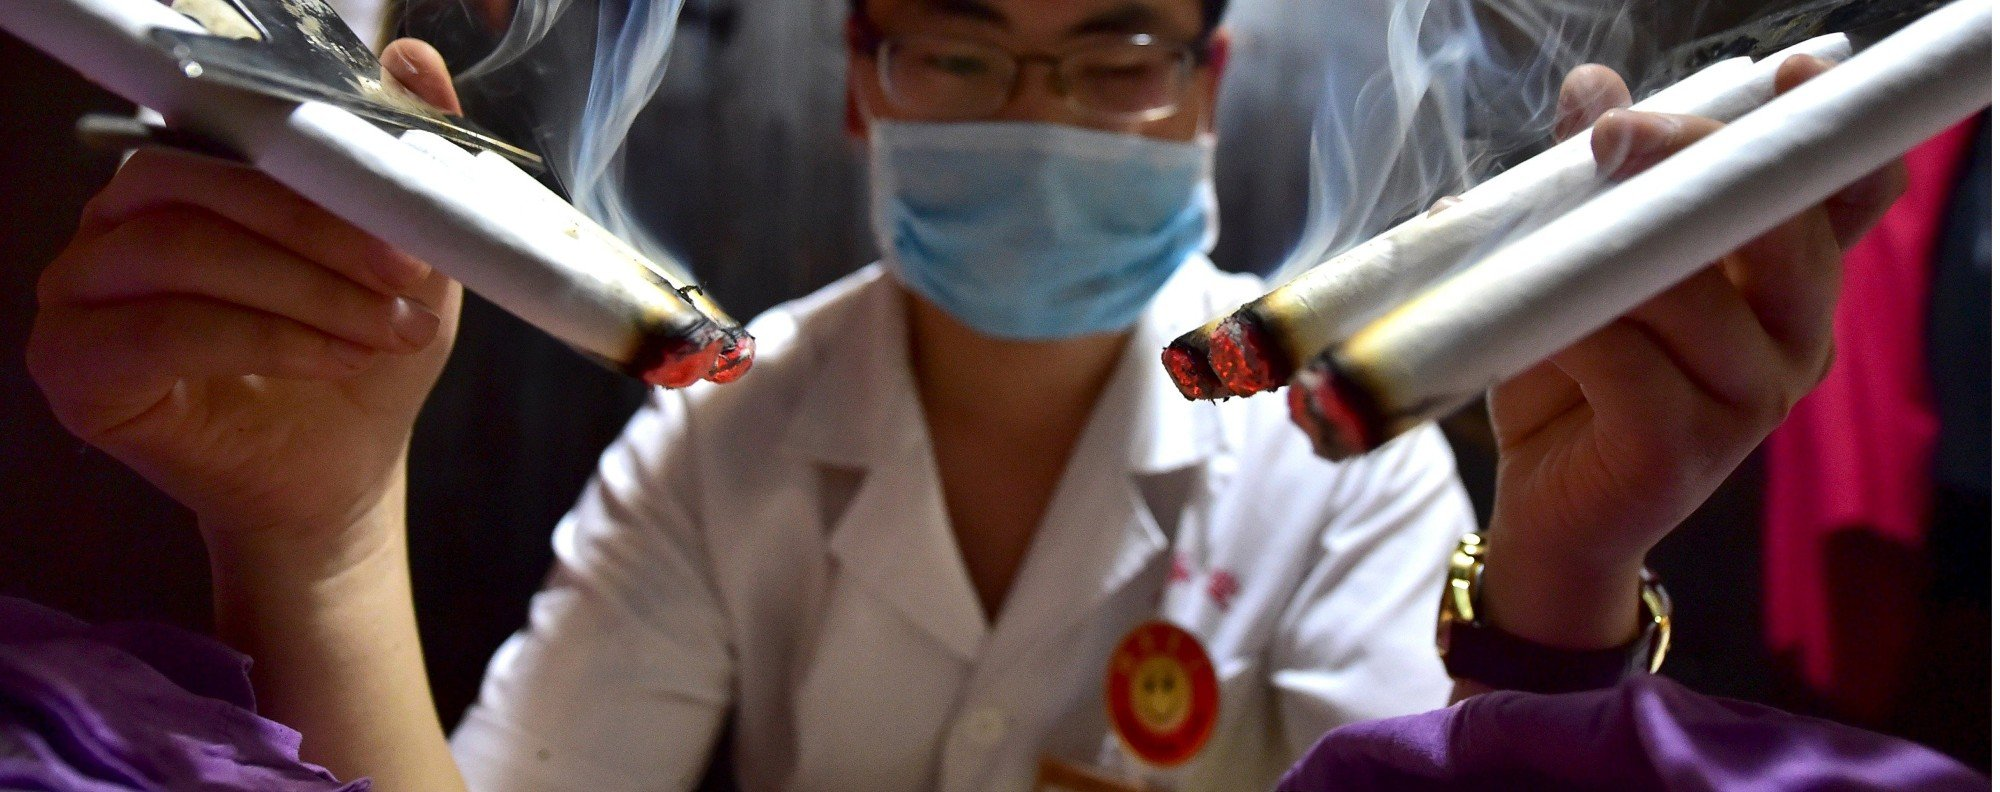 A TCM moxibustion treatment. Photo: Reuters